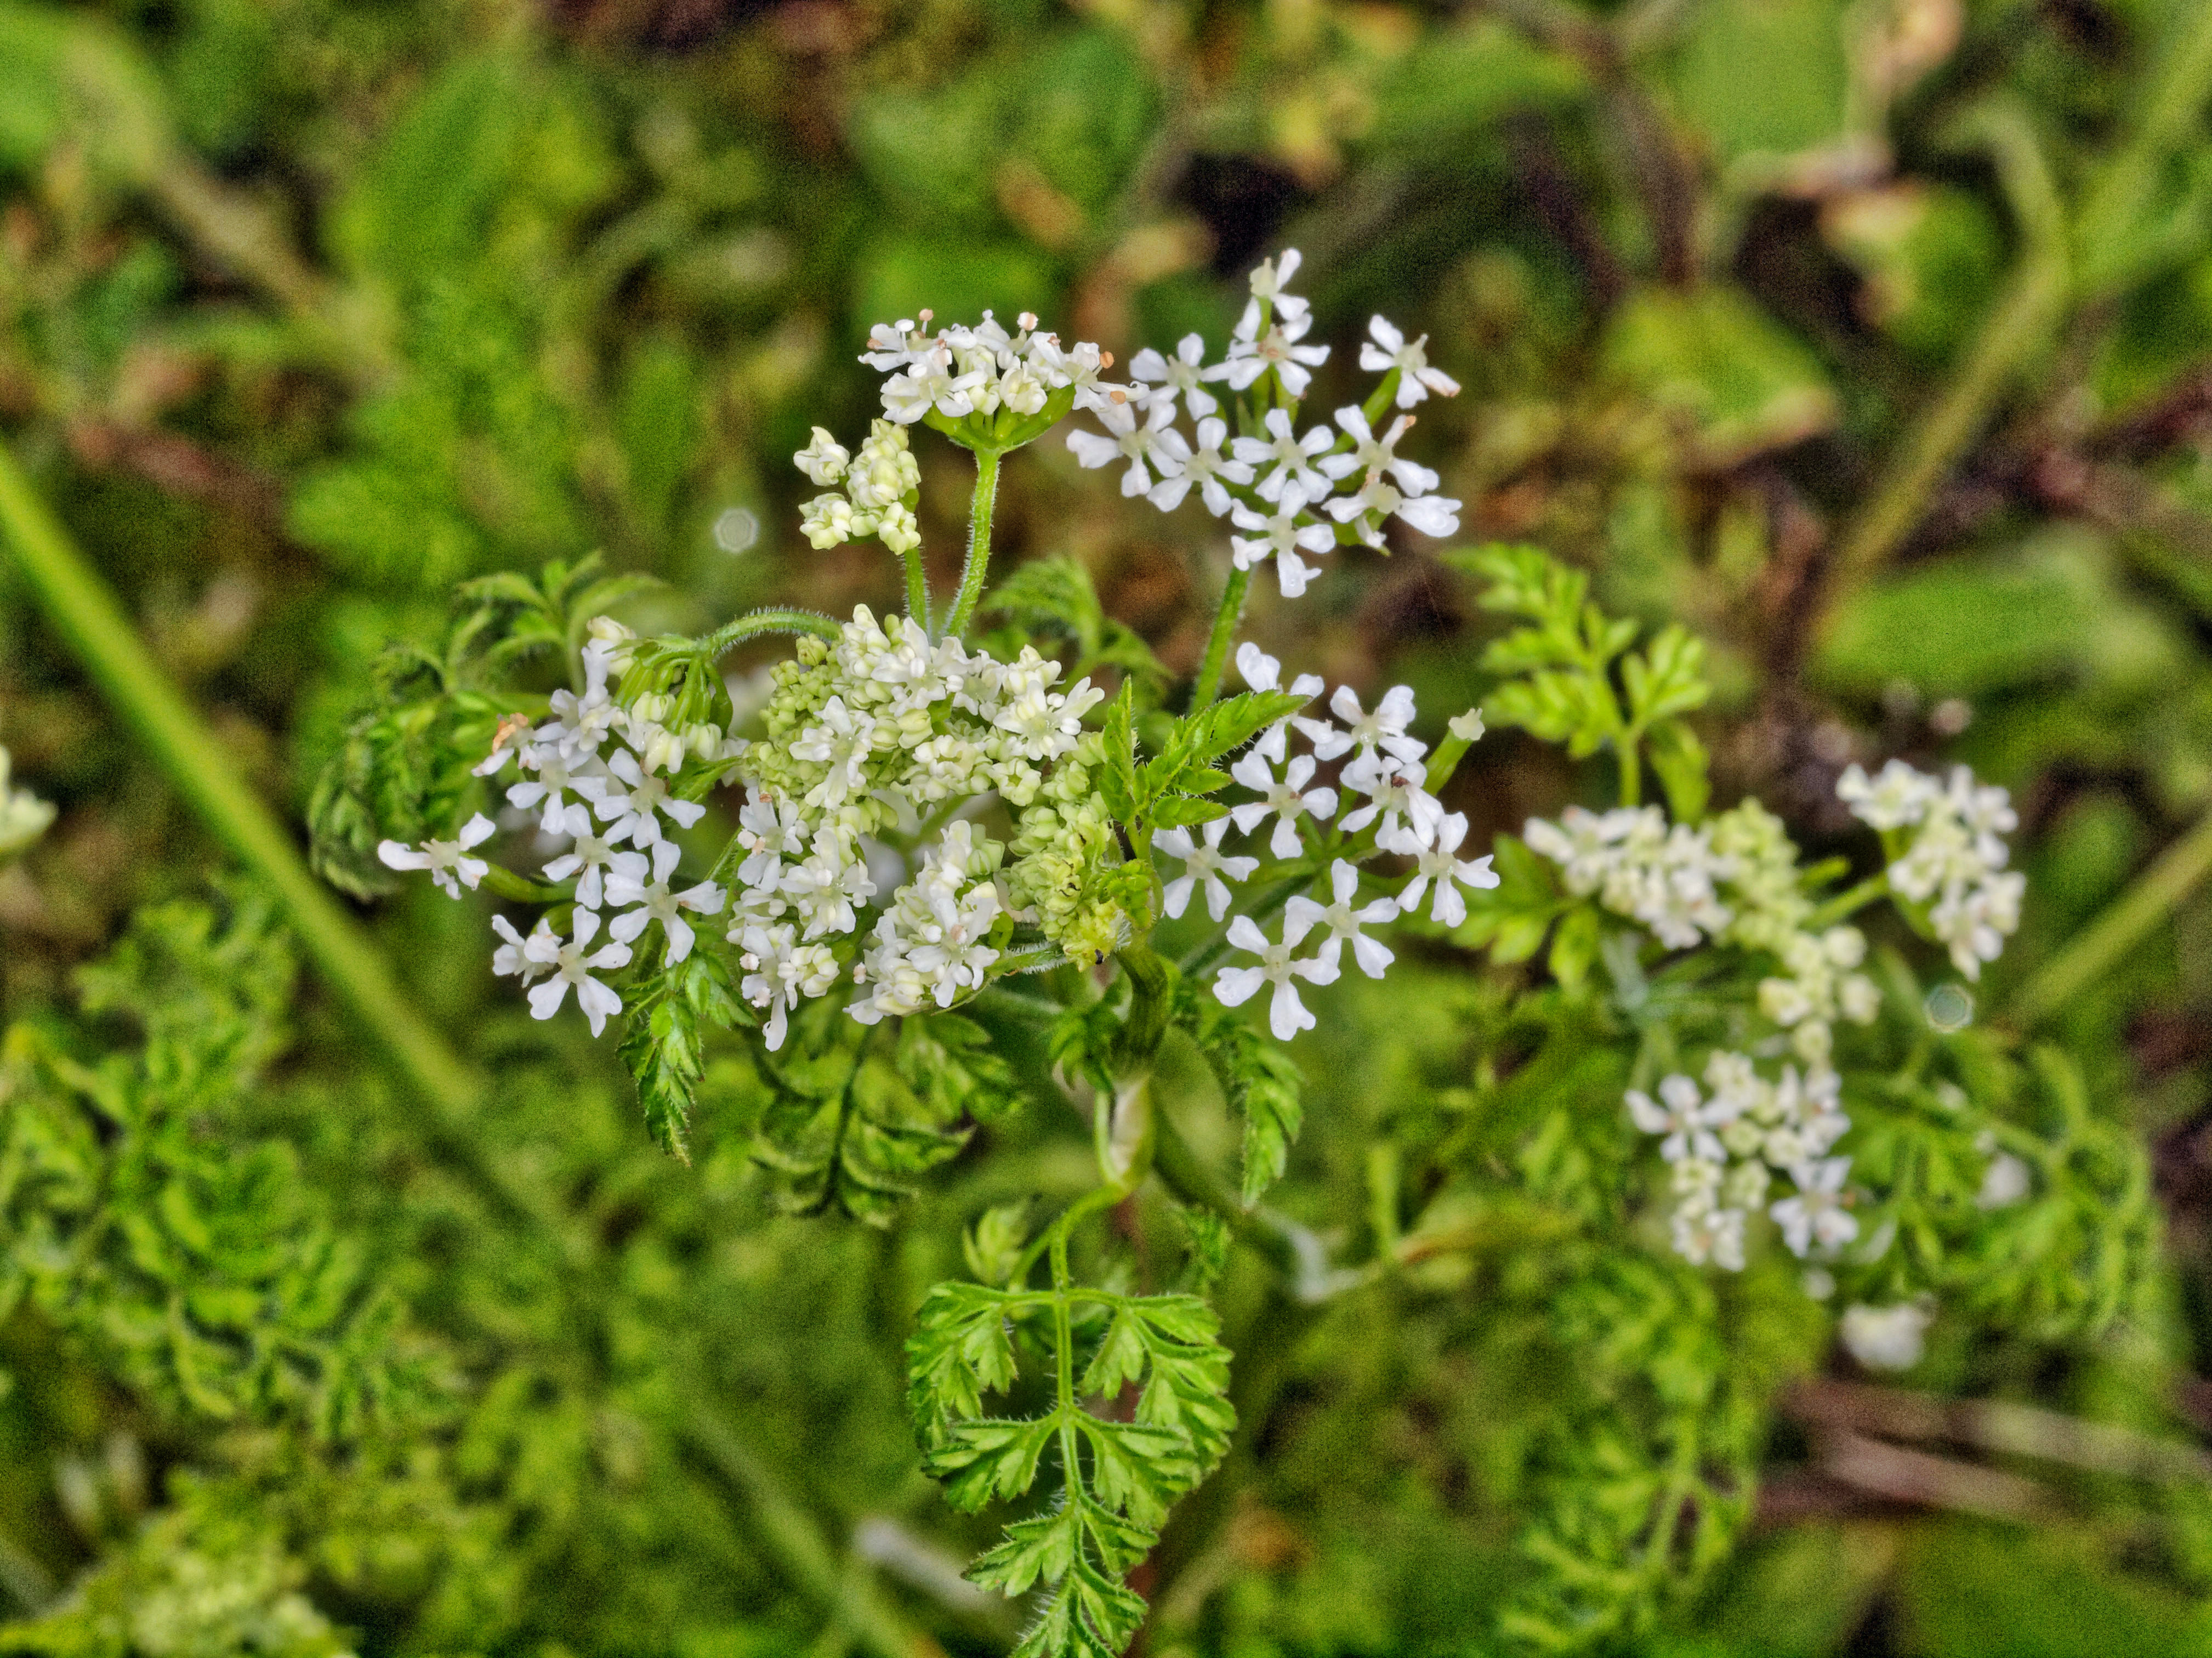 This should be Chervil-1.jpeg.  Is it missing?